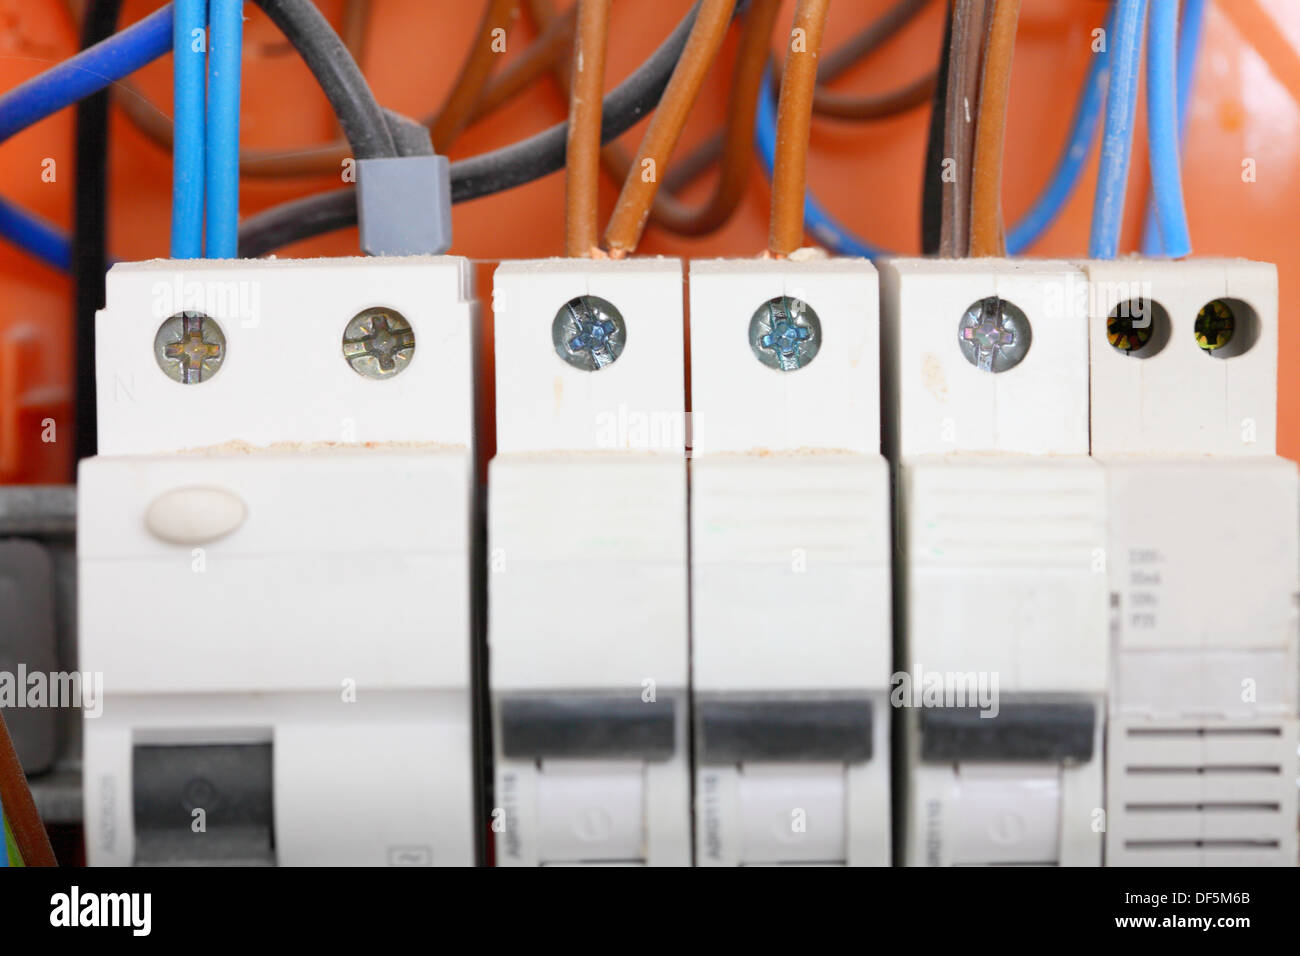 Dorable Electrical Installation Technology Motif - Best Images for ...